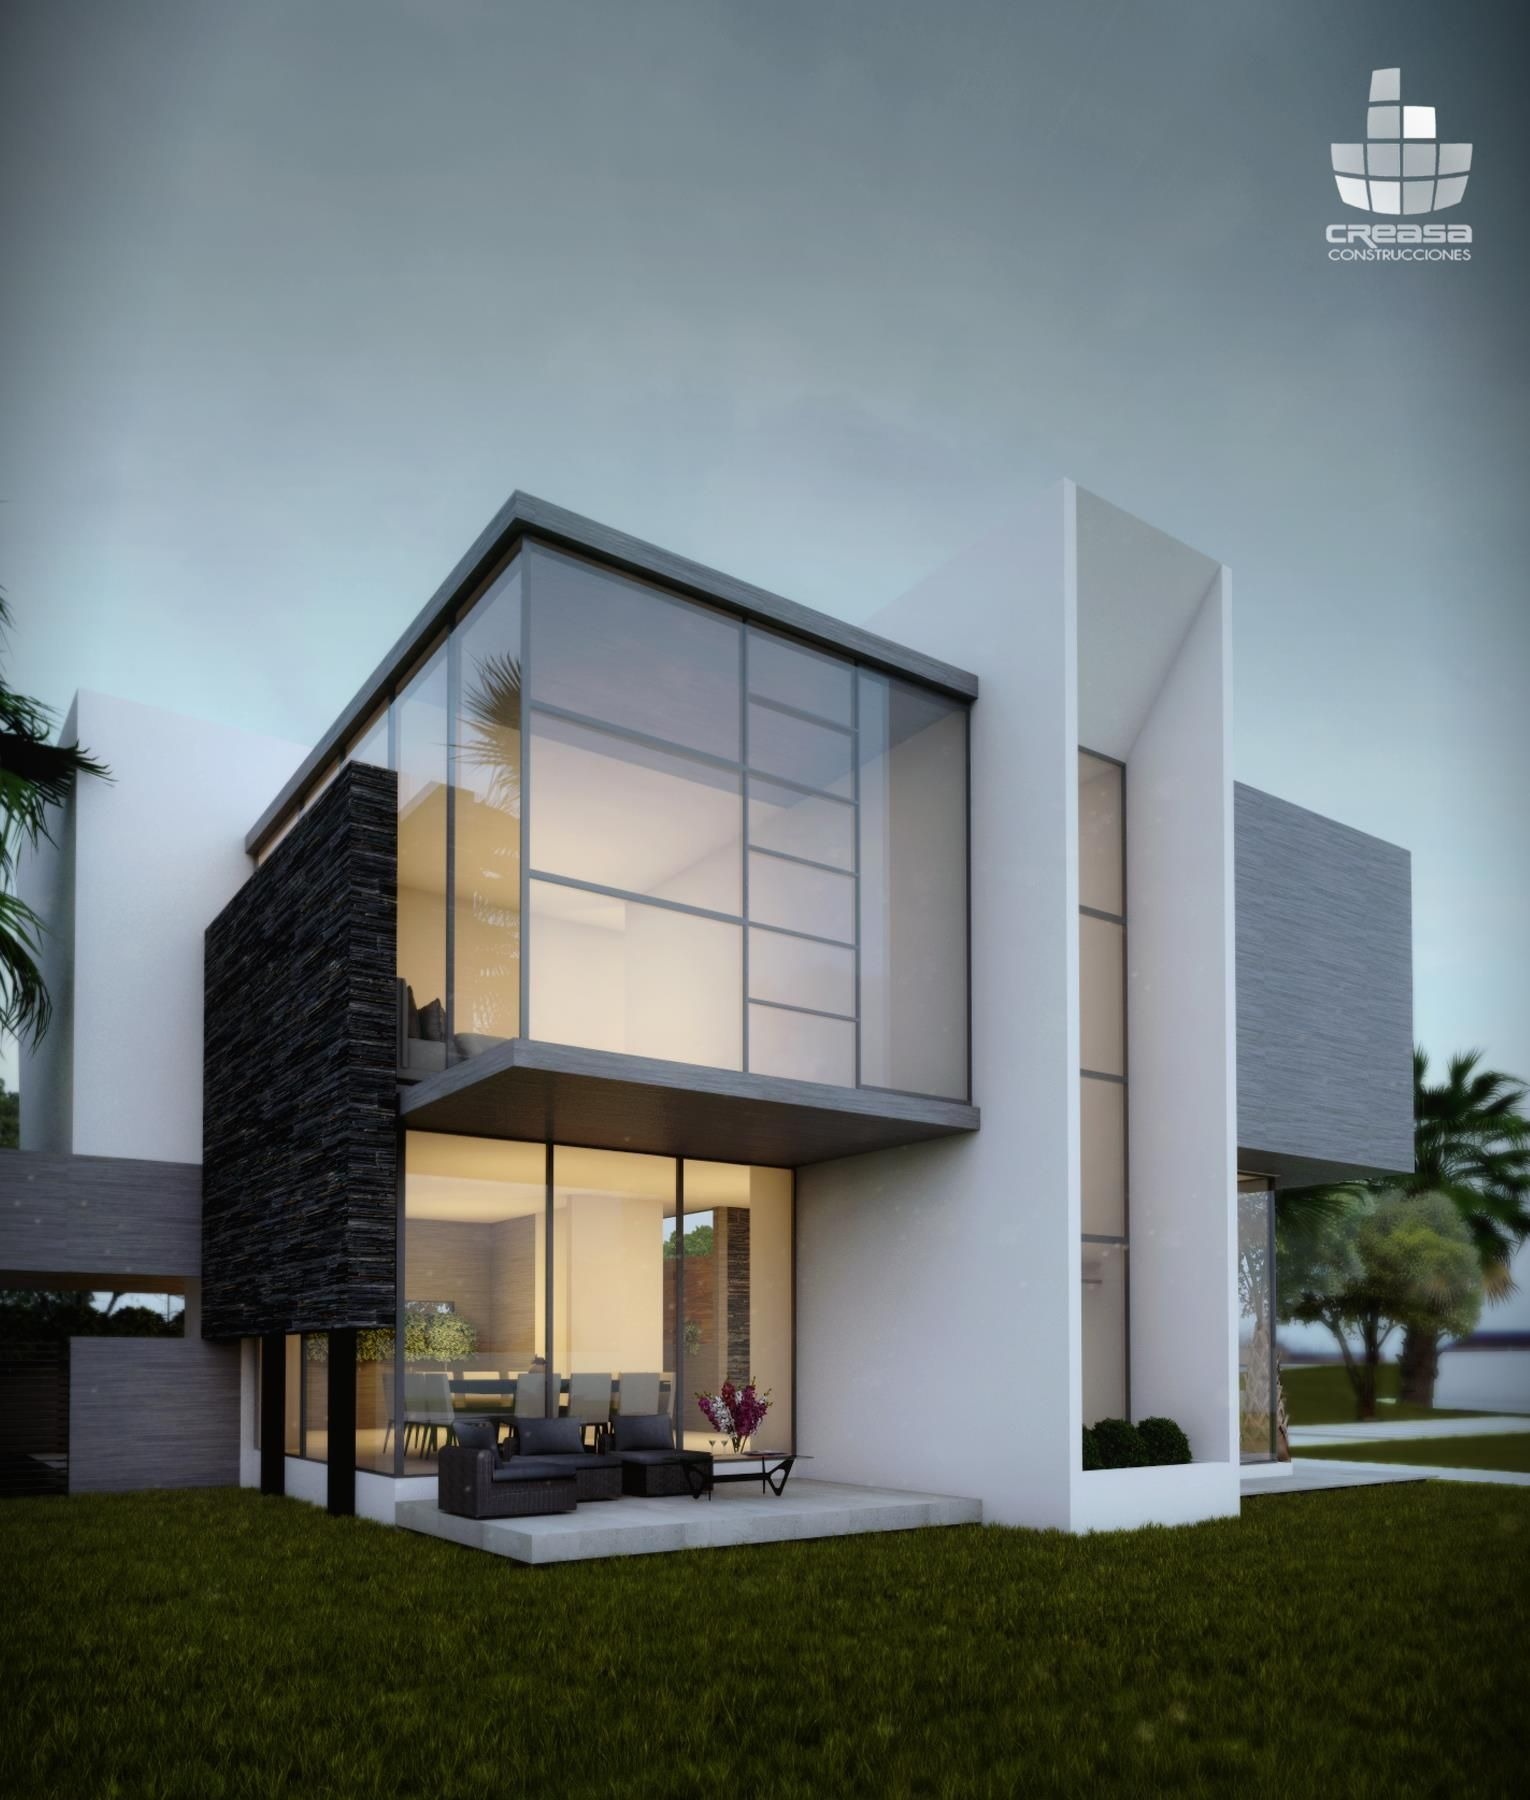 Creasa modern architecture pinterest villas house for Modern house villa